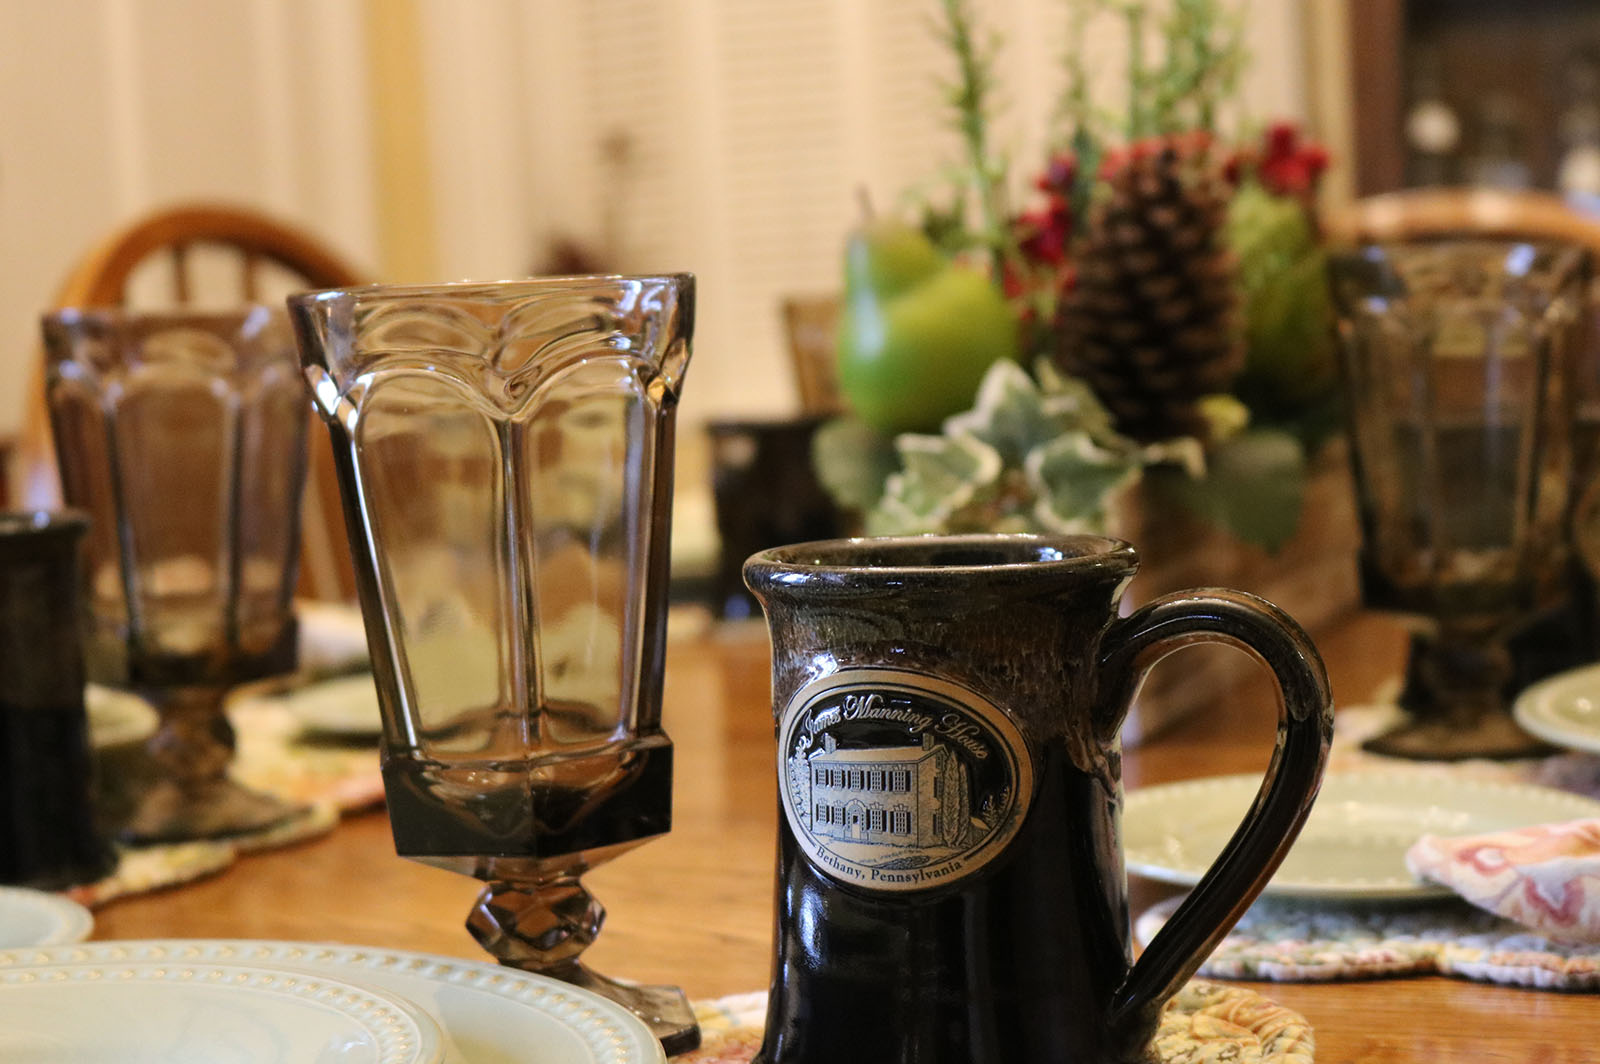 Personal Brew, James Manning B&B, Honesdale, PA